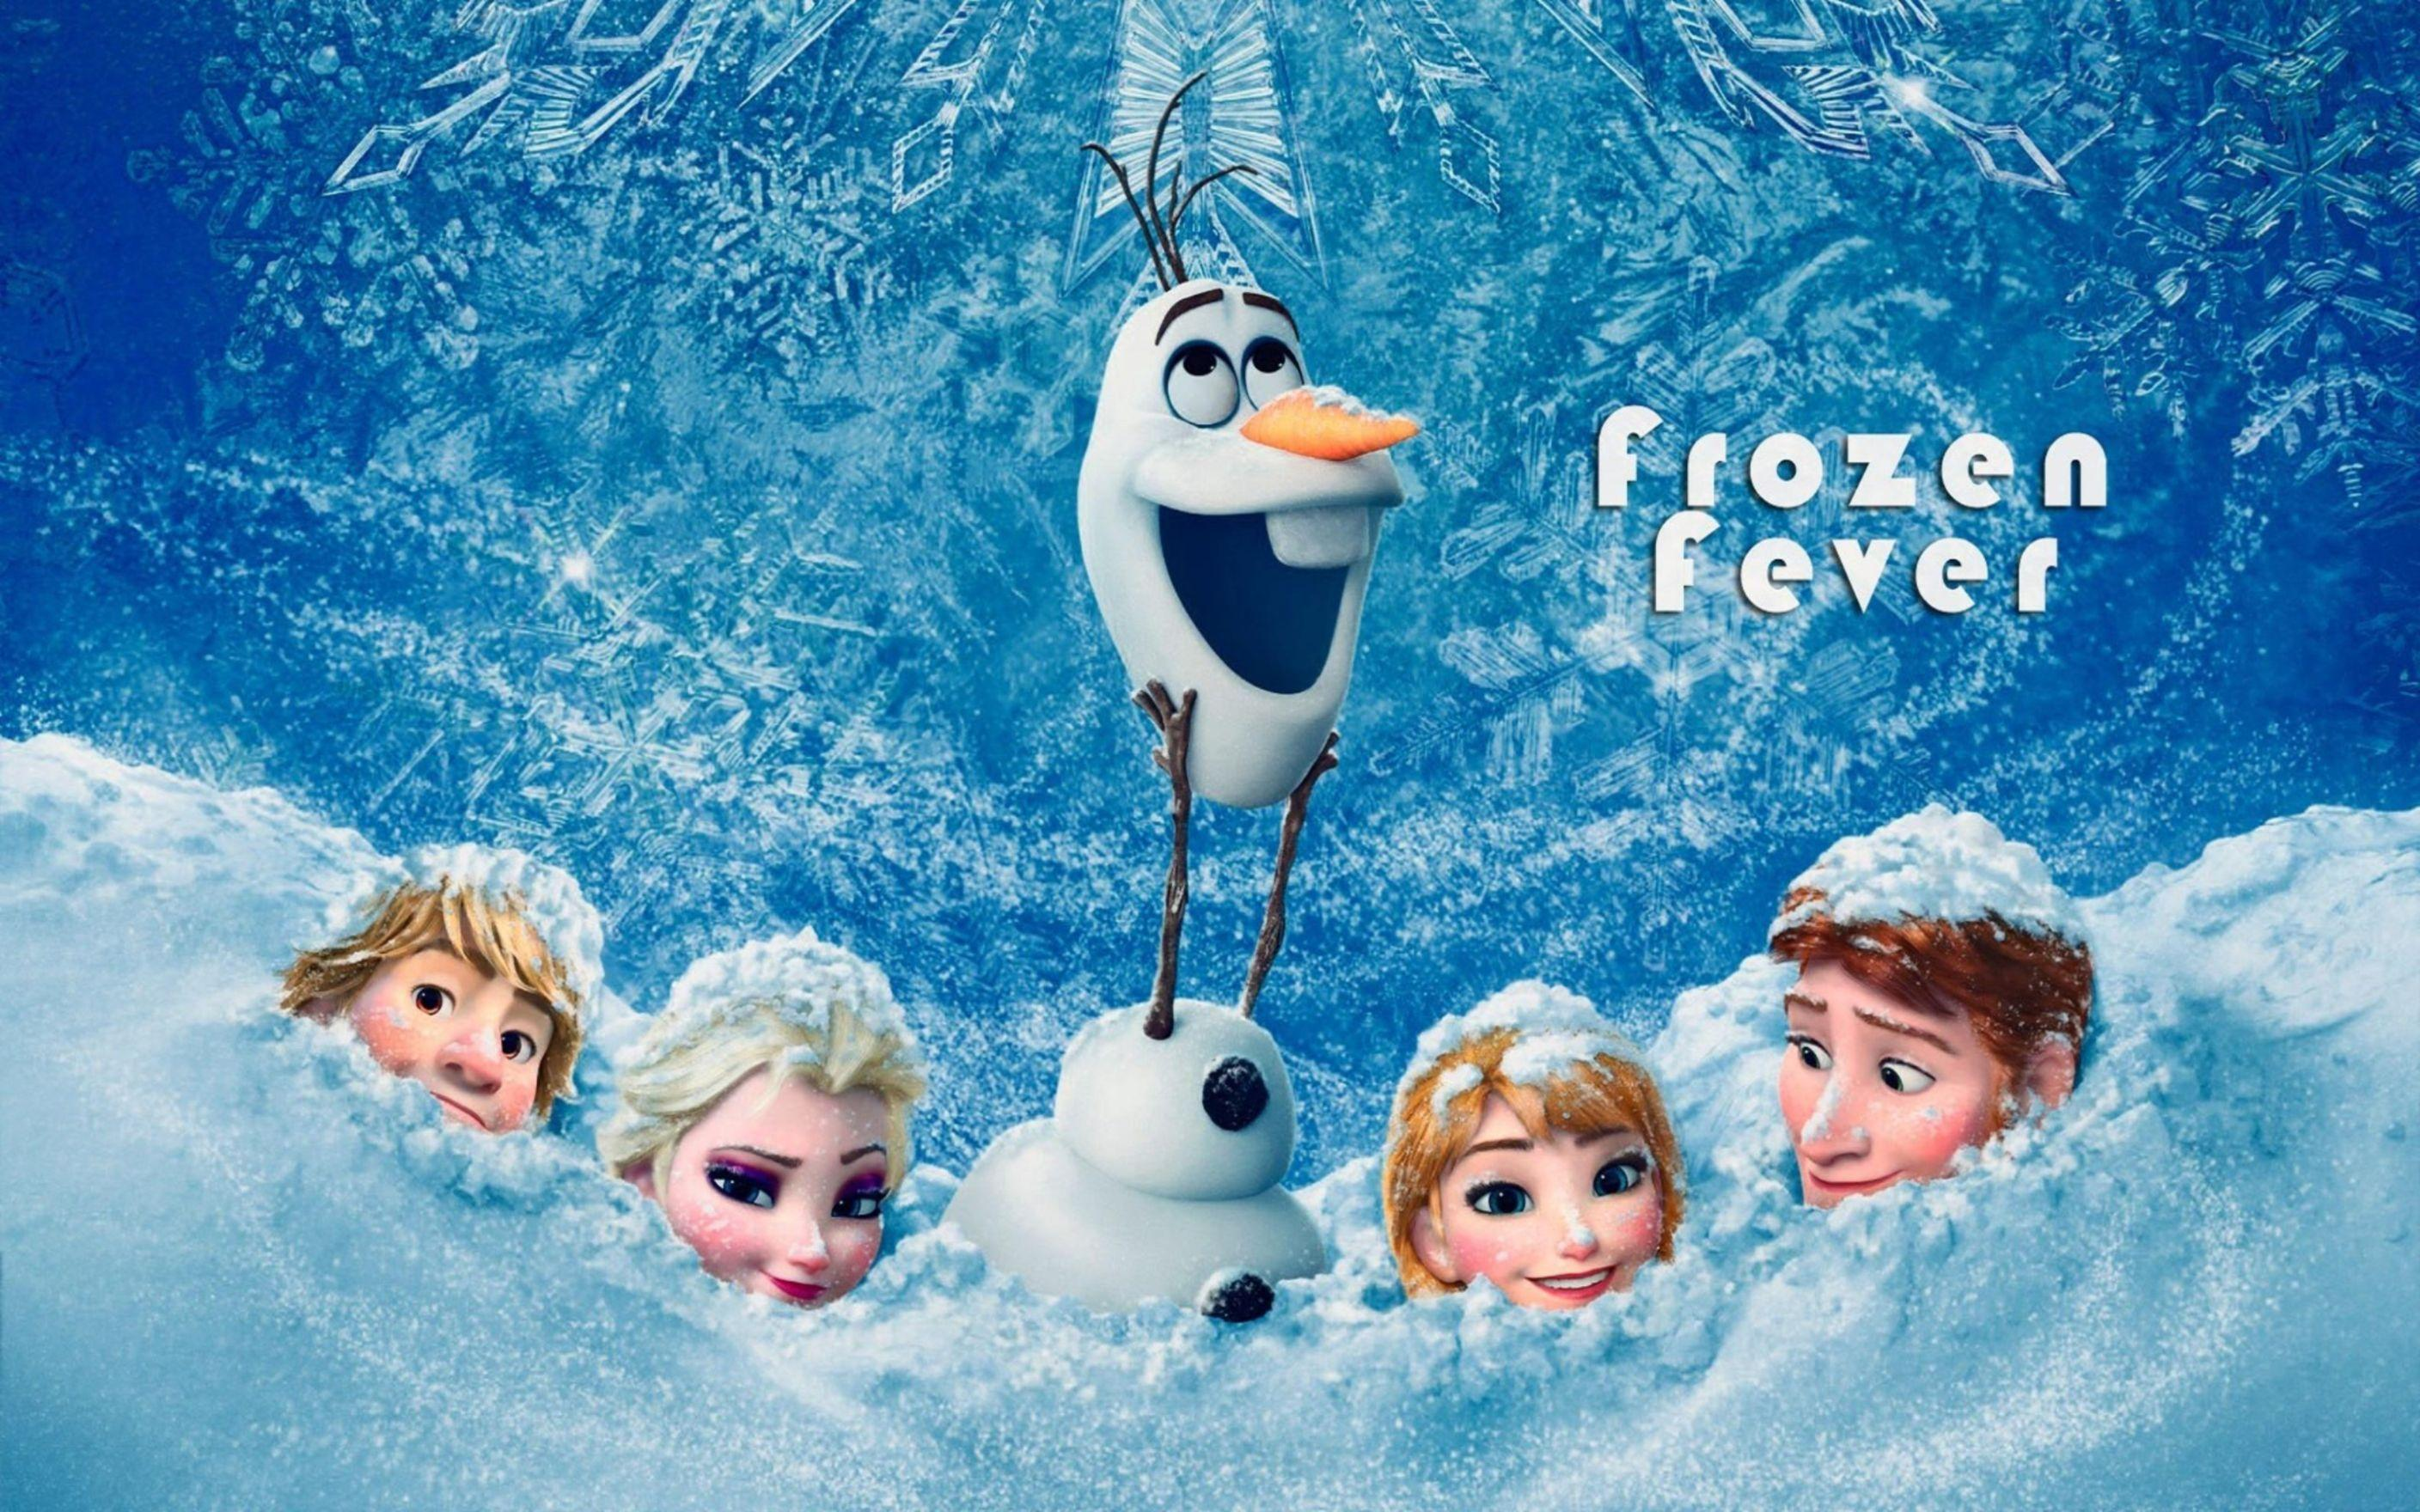 Frozen fever wallpapers wallpaper cave - Beautiful frozen computer wallpaper ...